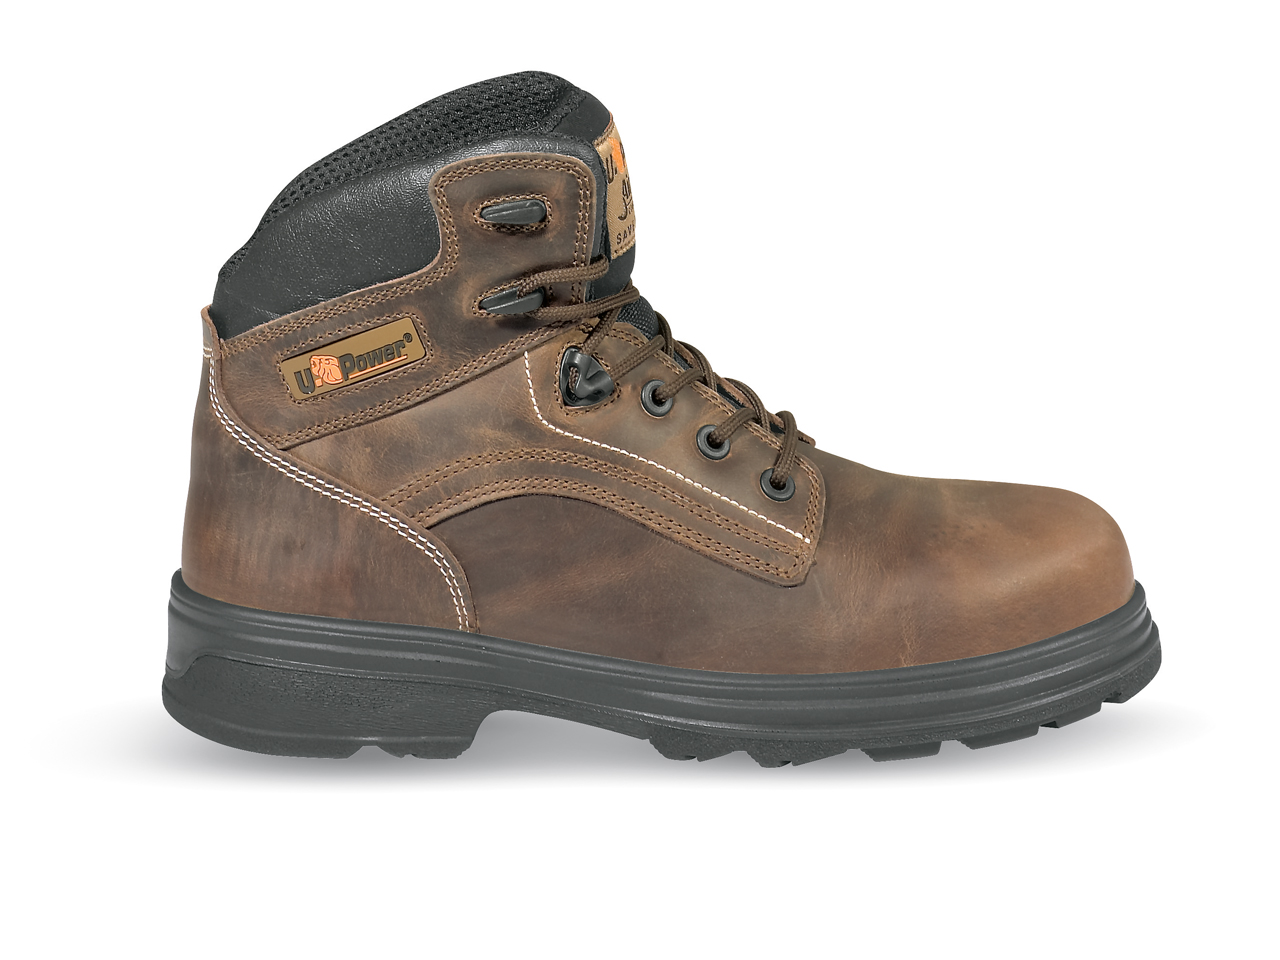 scarpa-da-lavoro-tribal-safety-shop-1